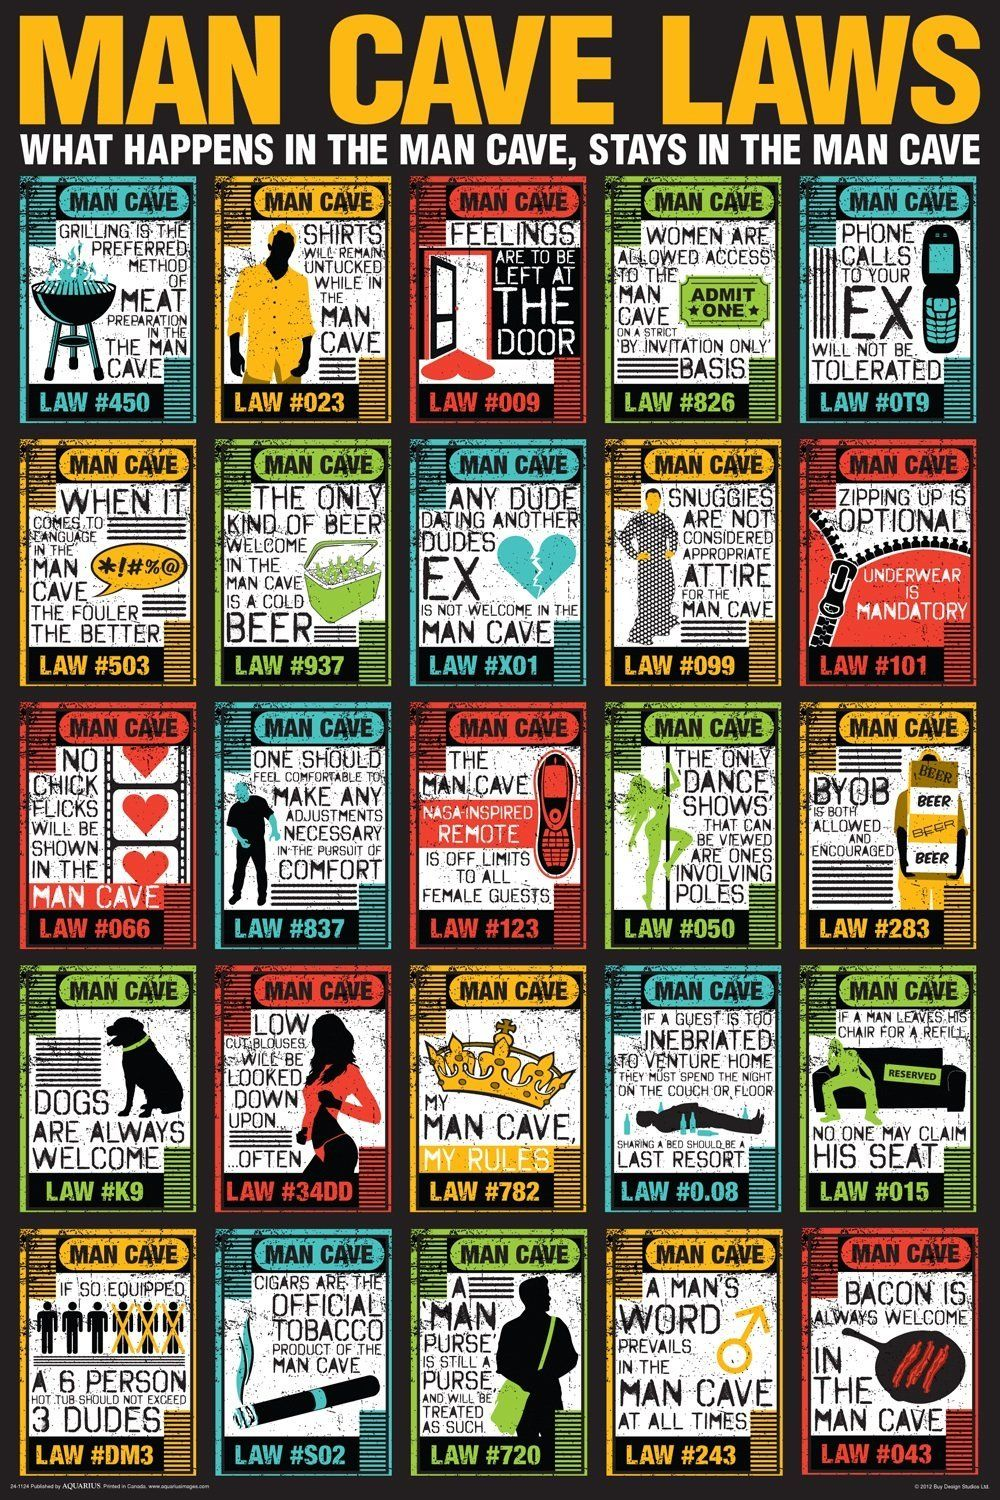 Man Cave Signs To Buy : Man cave laws poster on sale for signs